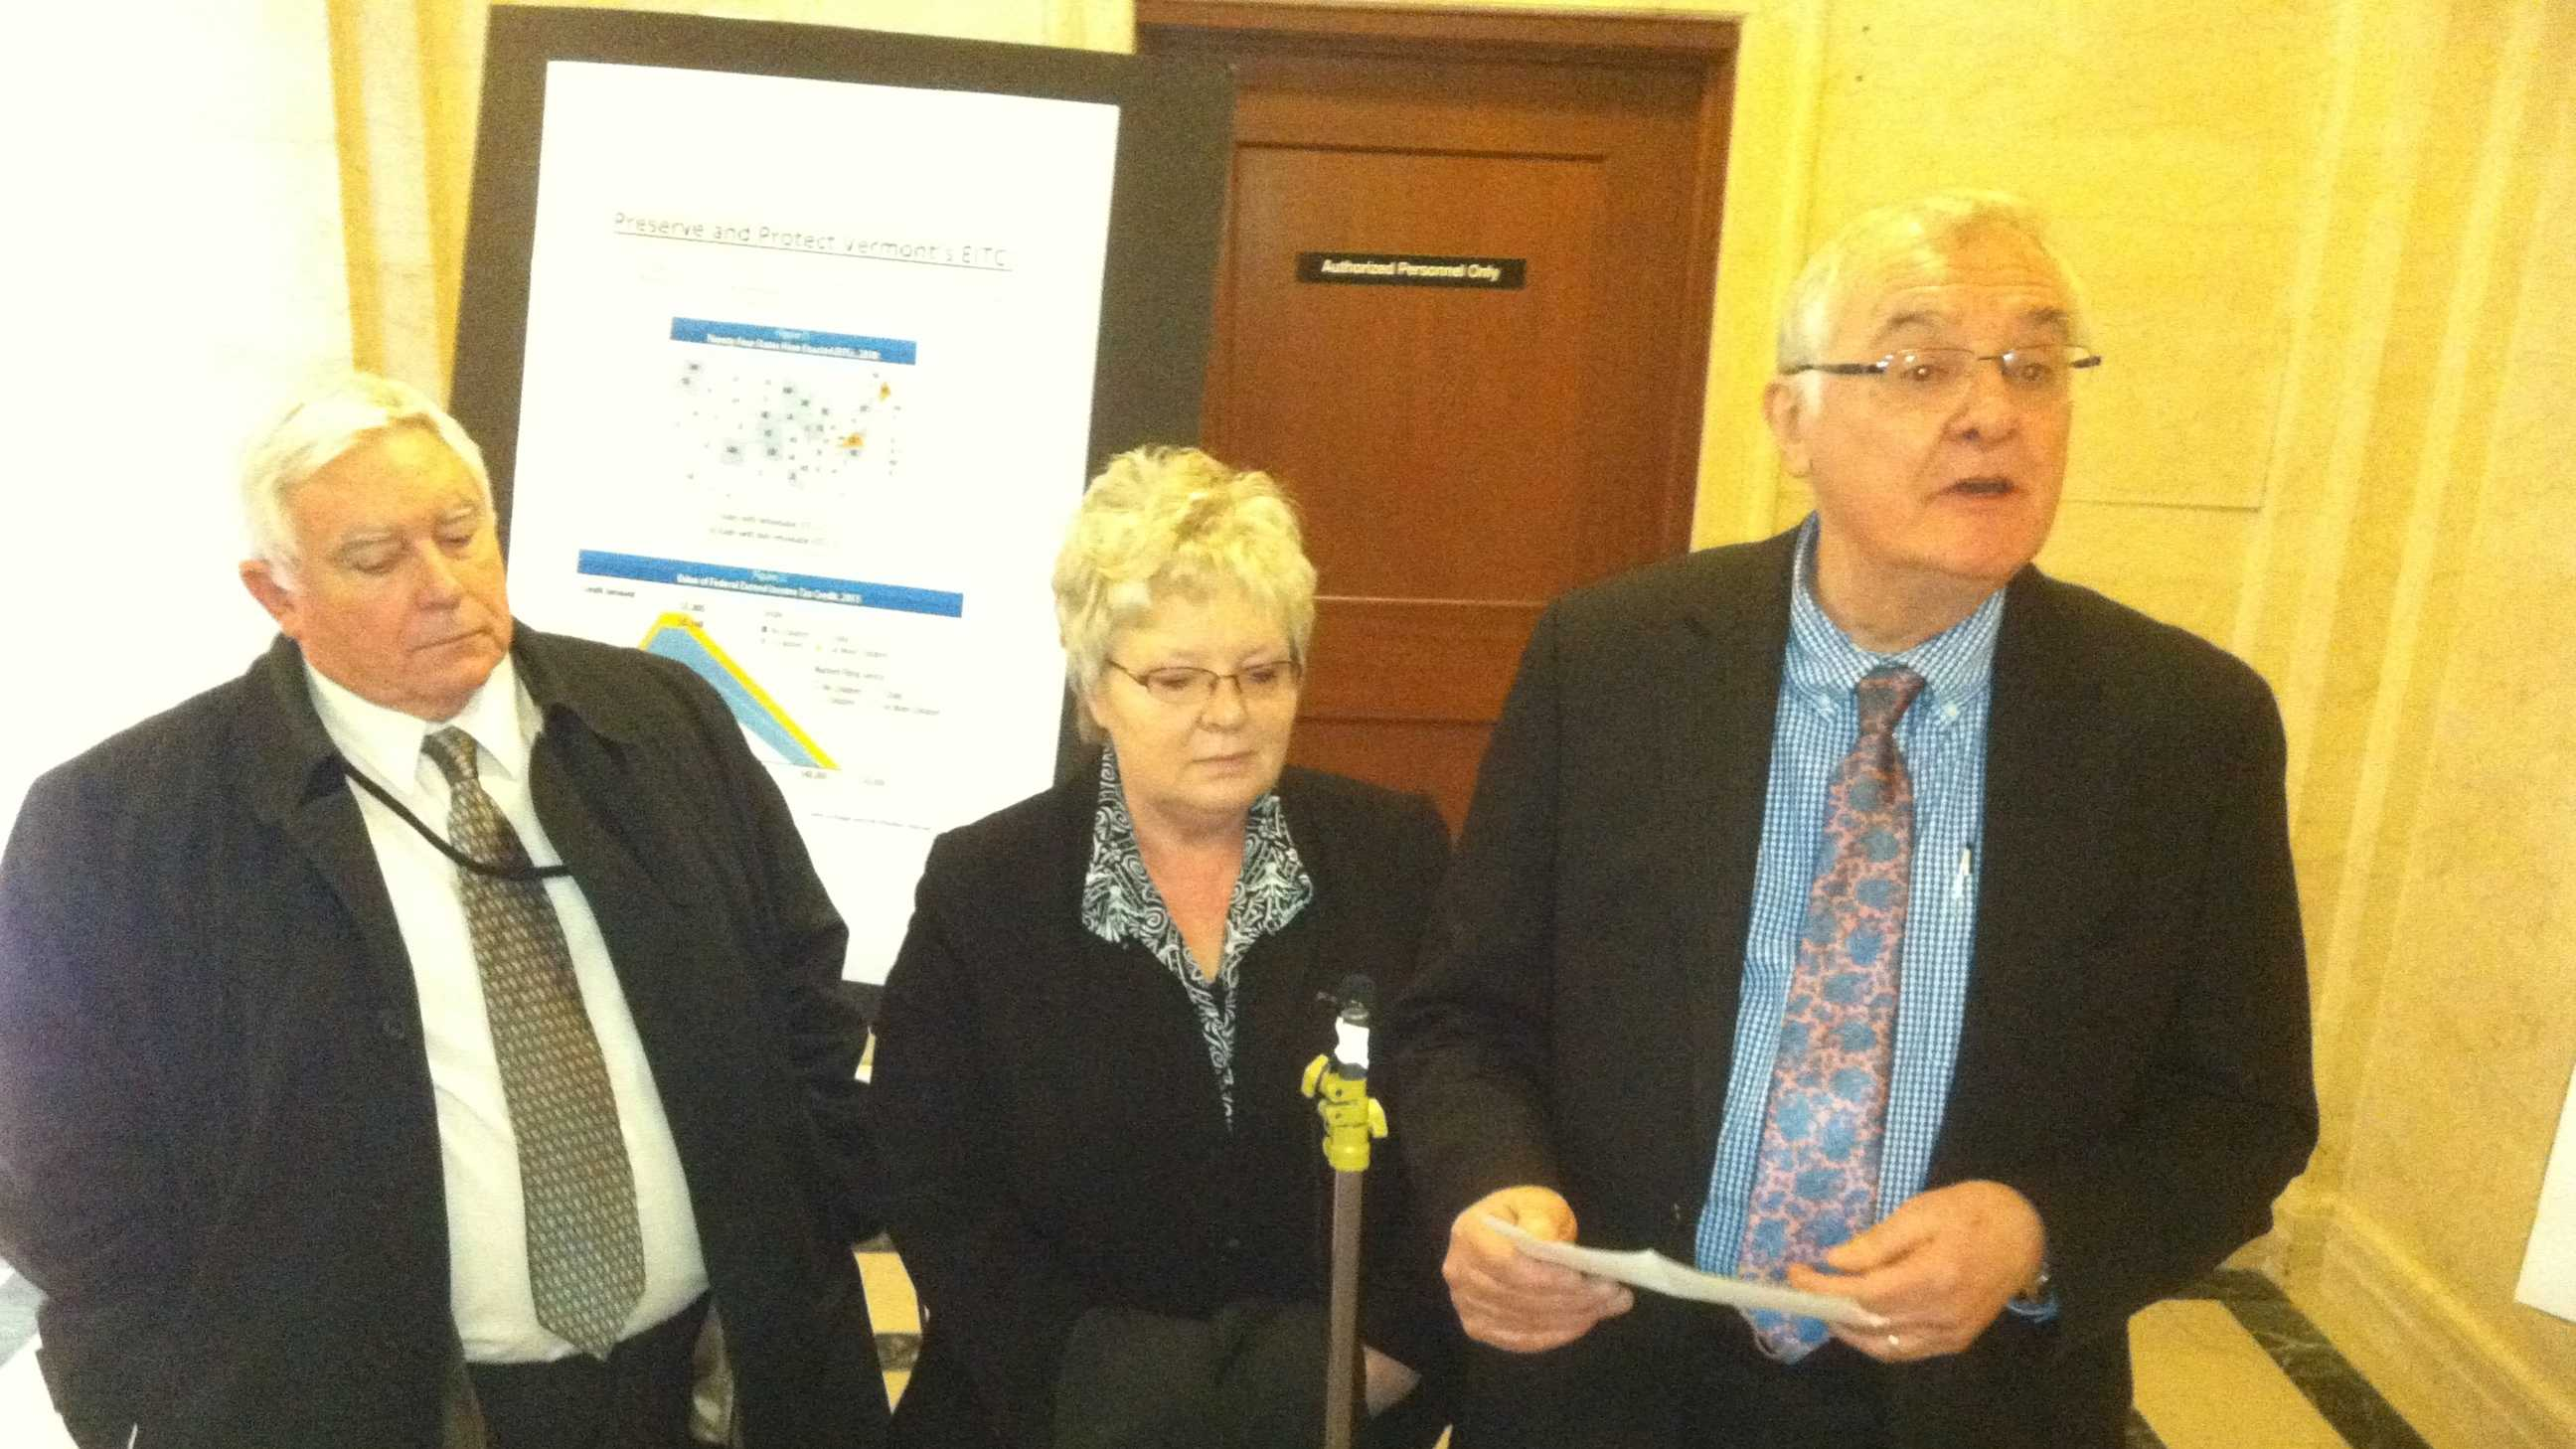 Reps. Topper McFaun (D/R-Barre), Susan Hatch Davis (P-Washington) and John Moran (D-Wardsboro) criticize any EITC cut.